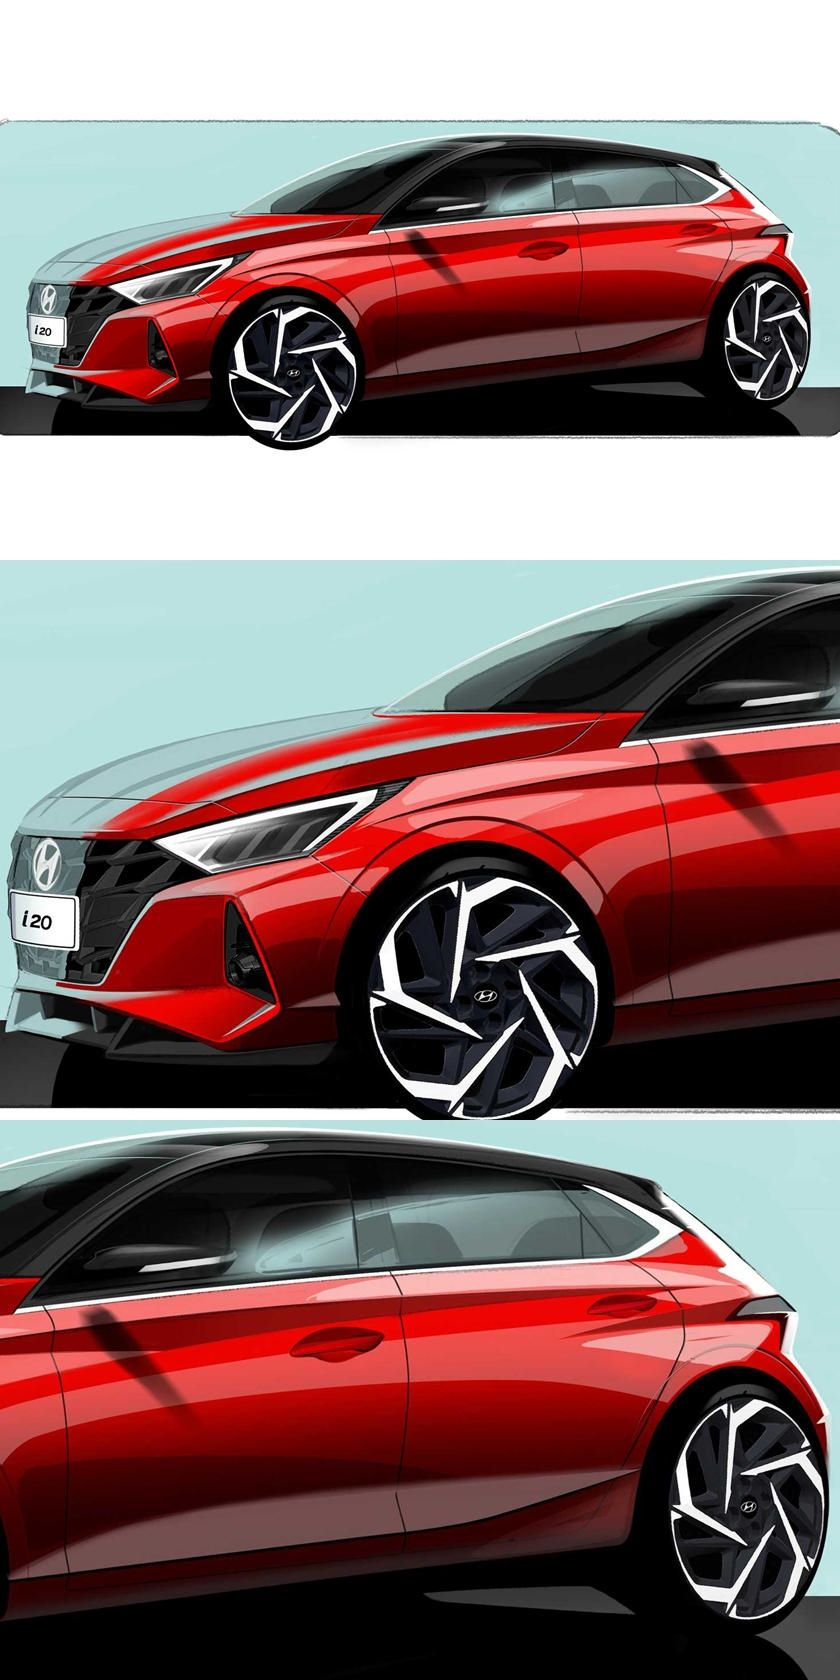 Here S Proof The Next Hyundai Kona Will Look Awesome Who Knew A Humble Subcompact Hatchback Could Look This Good Hyundai Subcompact Hatchback